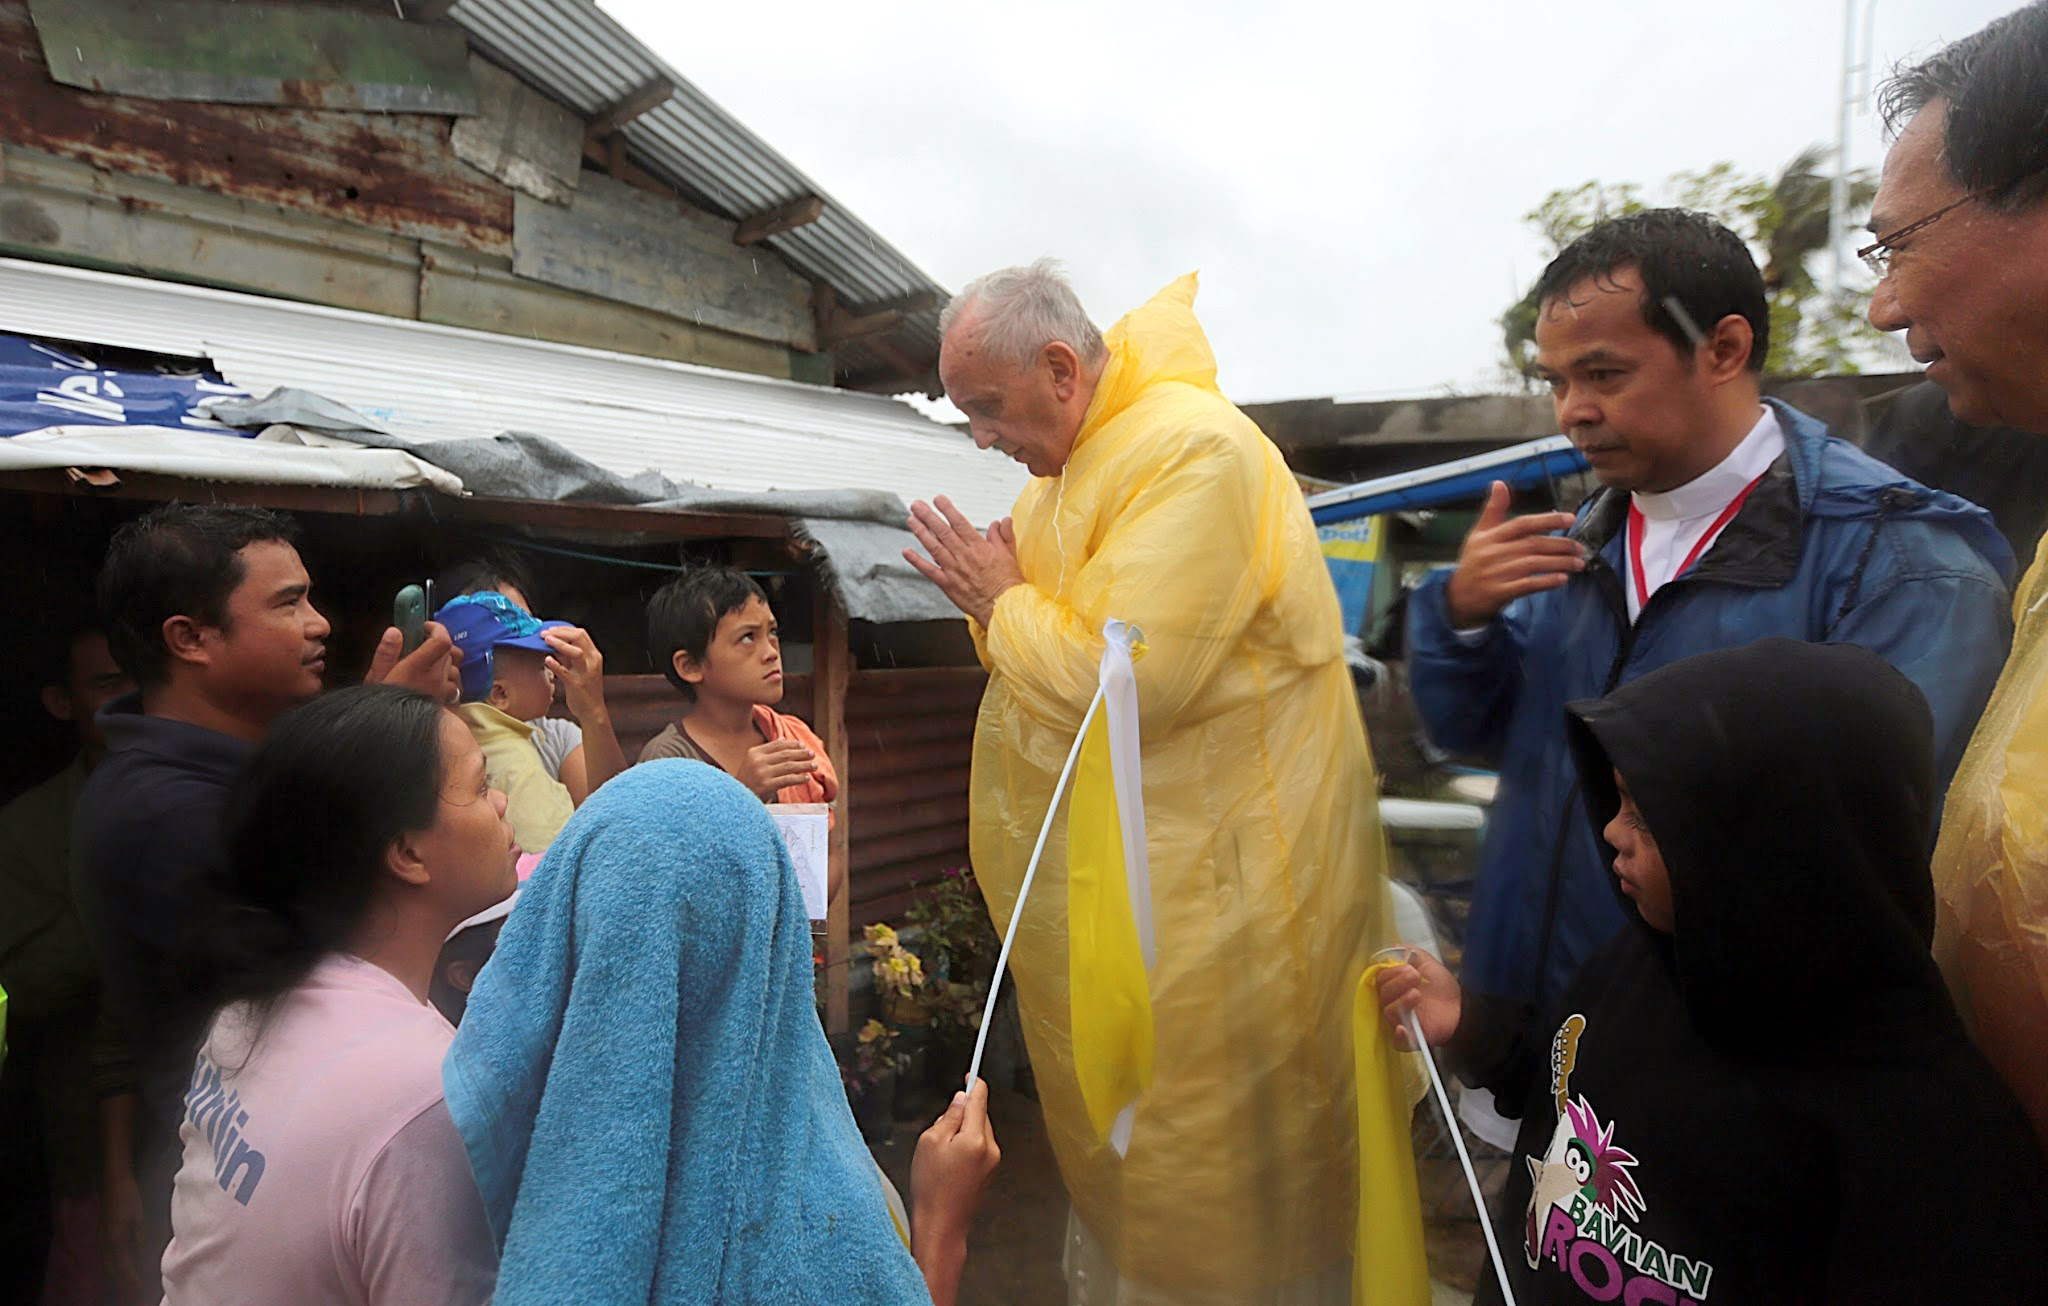 Pope Francis visits families of typhoon Yolanda victims in one of the areas in Palo, Leyte Saturday, January 17, 2015. (Photo by Benhur Arcayan/Malacanang Photo Bureau)